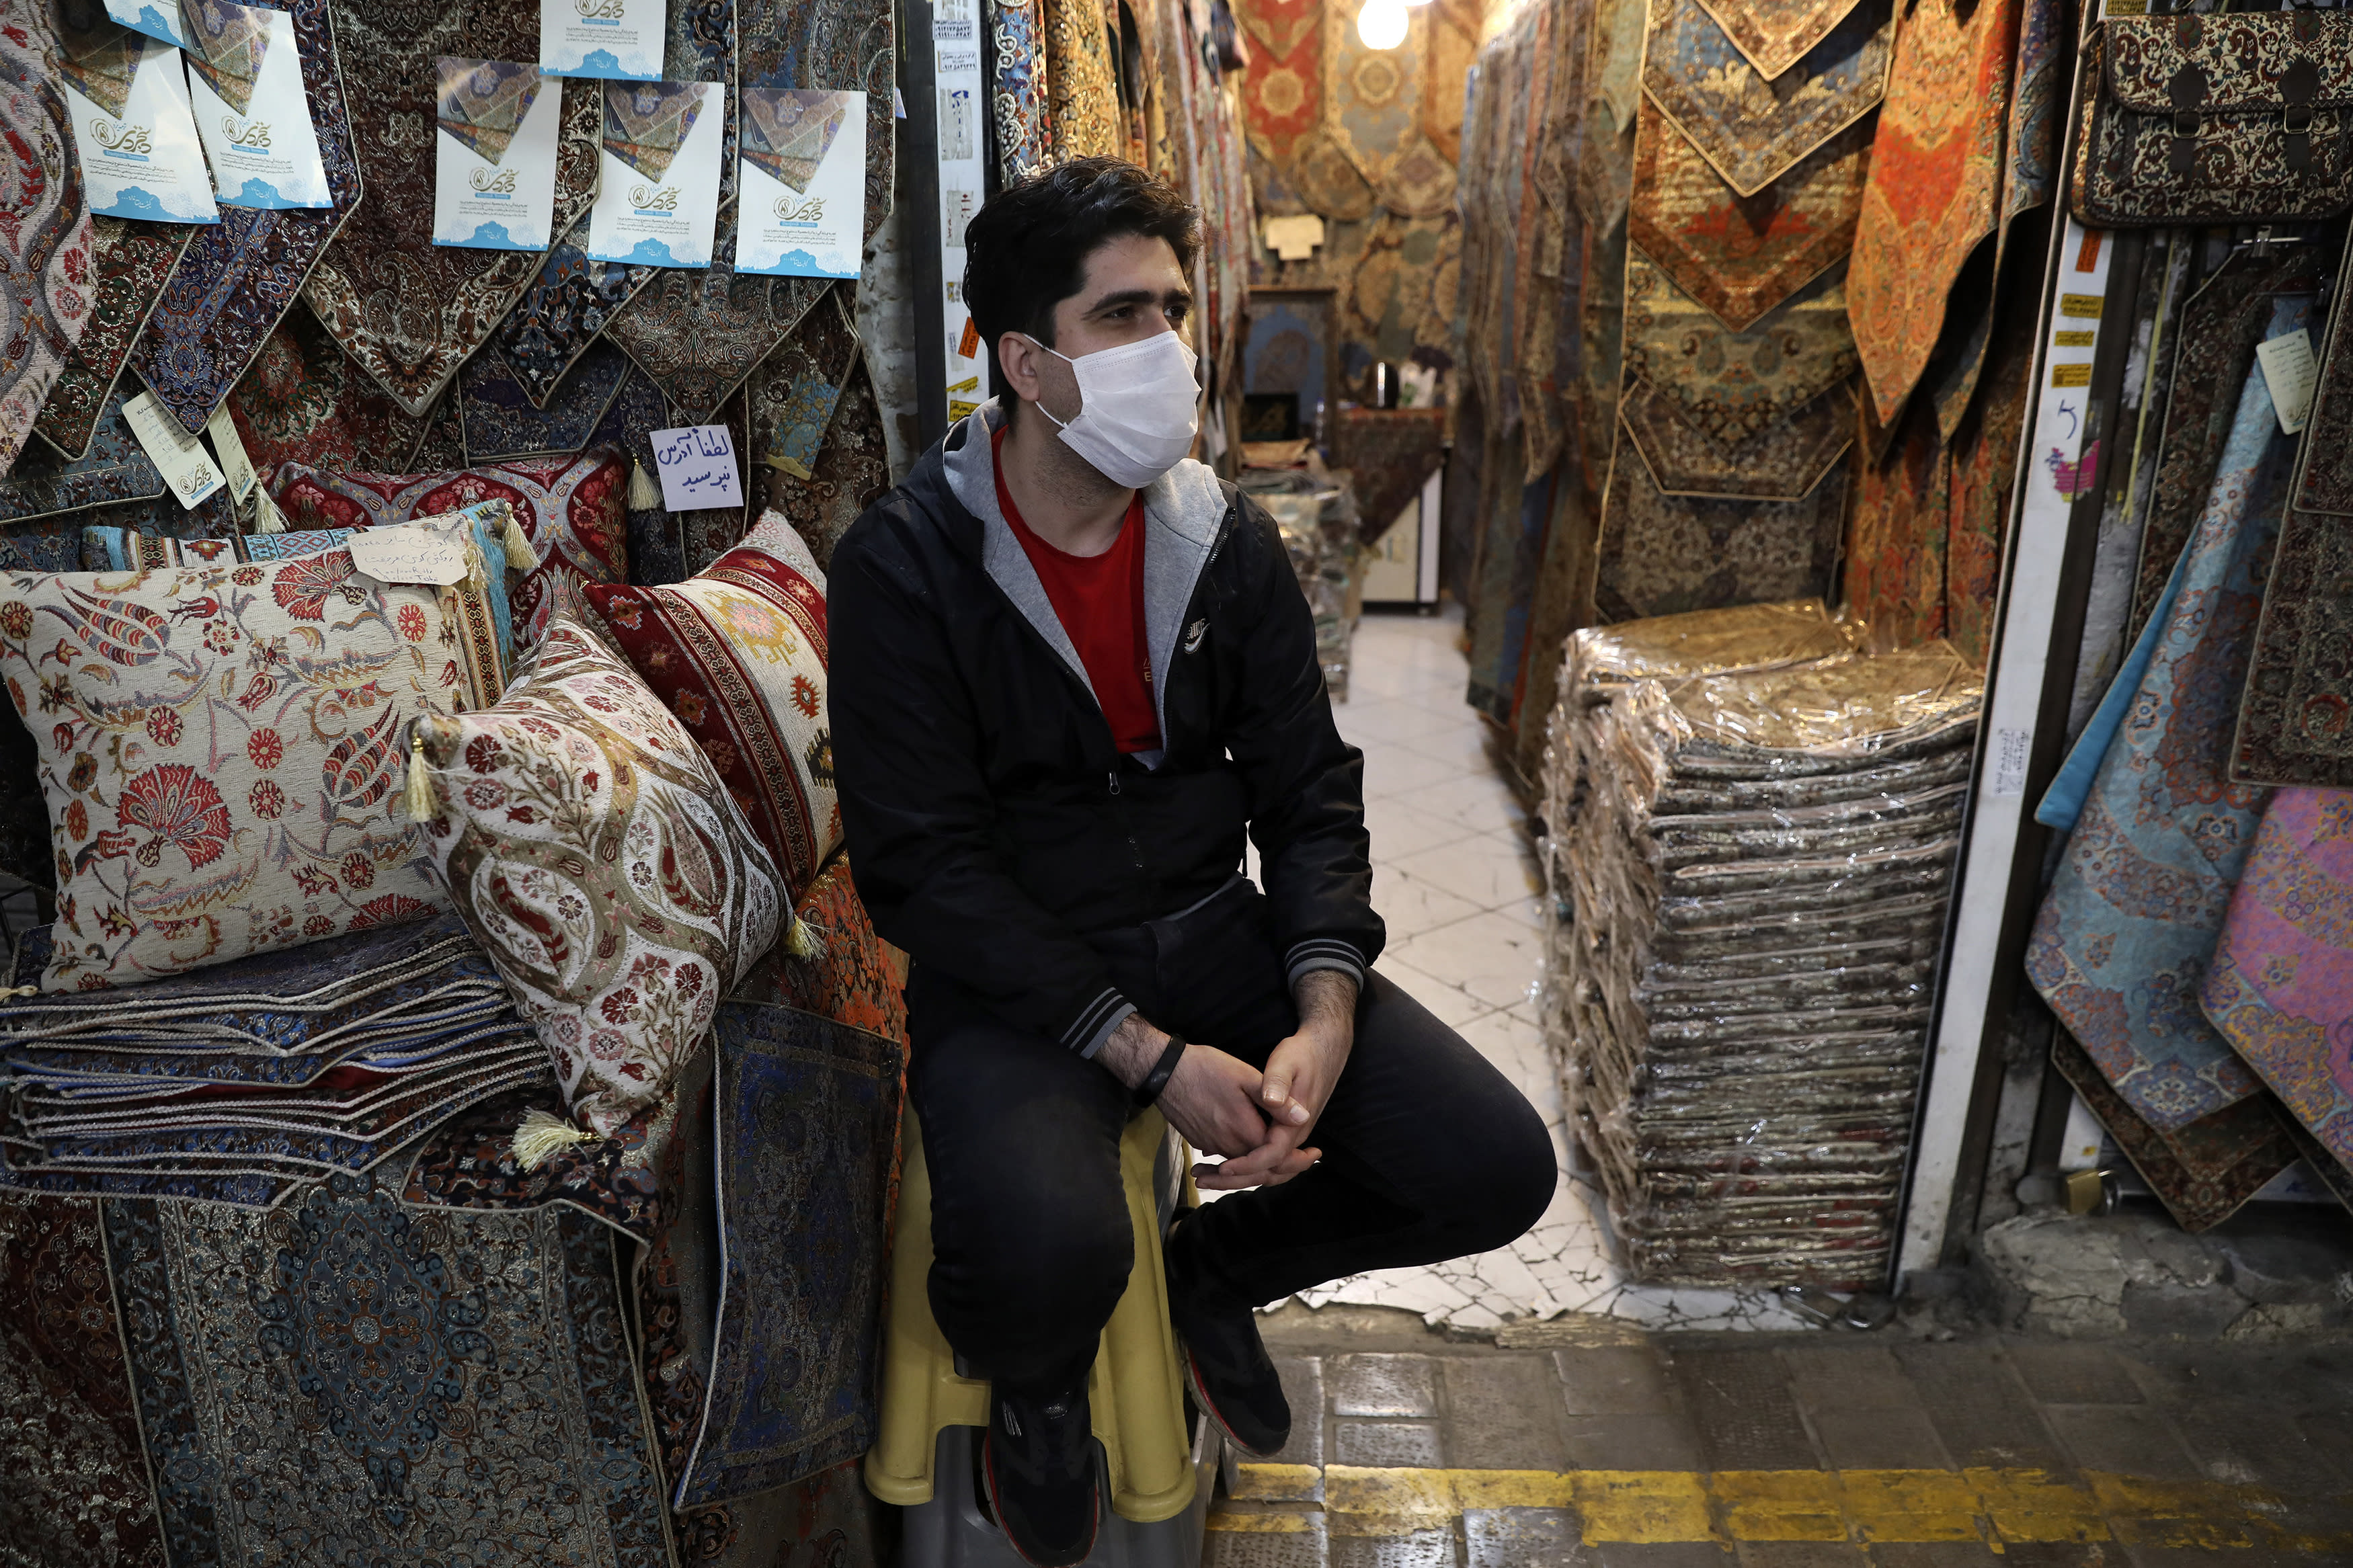 In this Tuesday, March 17, 2020, photo, a shopkeeper wearing a face mask to help protect against the new coronavirus, waits for customers at the Tehran's Grand Bazaar, Iran. The new coronavirus ravaging Iran is cutting into celebrations marking the Persian New Year, known as Nowruz. (AP Photo/Vahid Salemi)